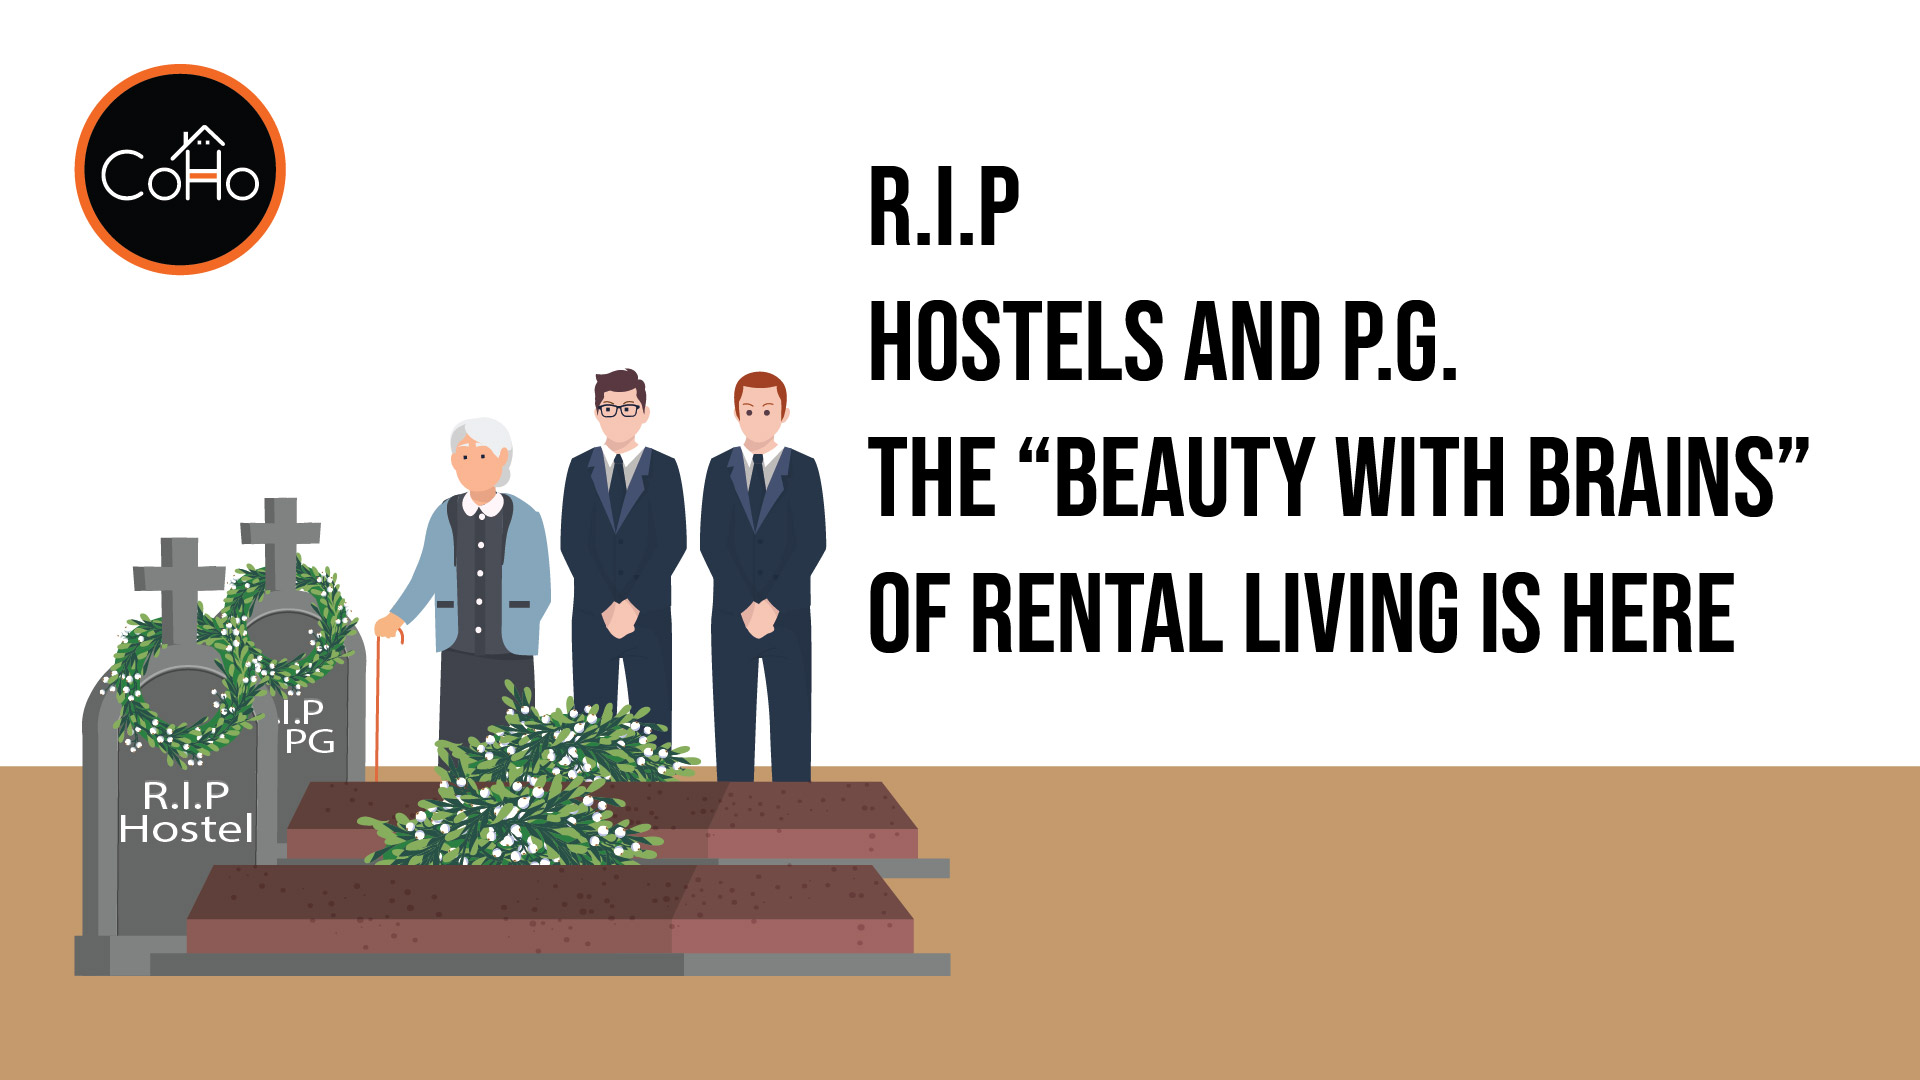 RIP hostels and PG's the 'beauty with brains' of rental living is here.